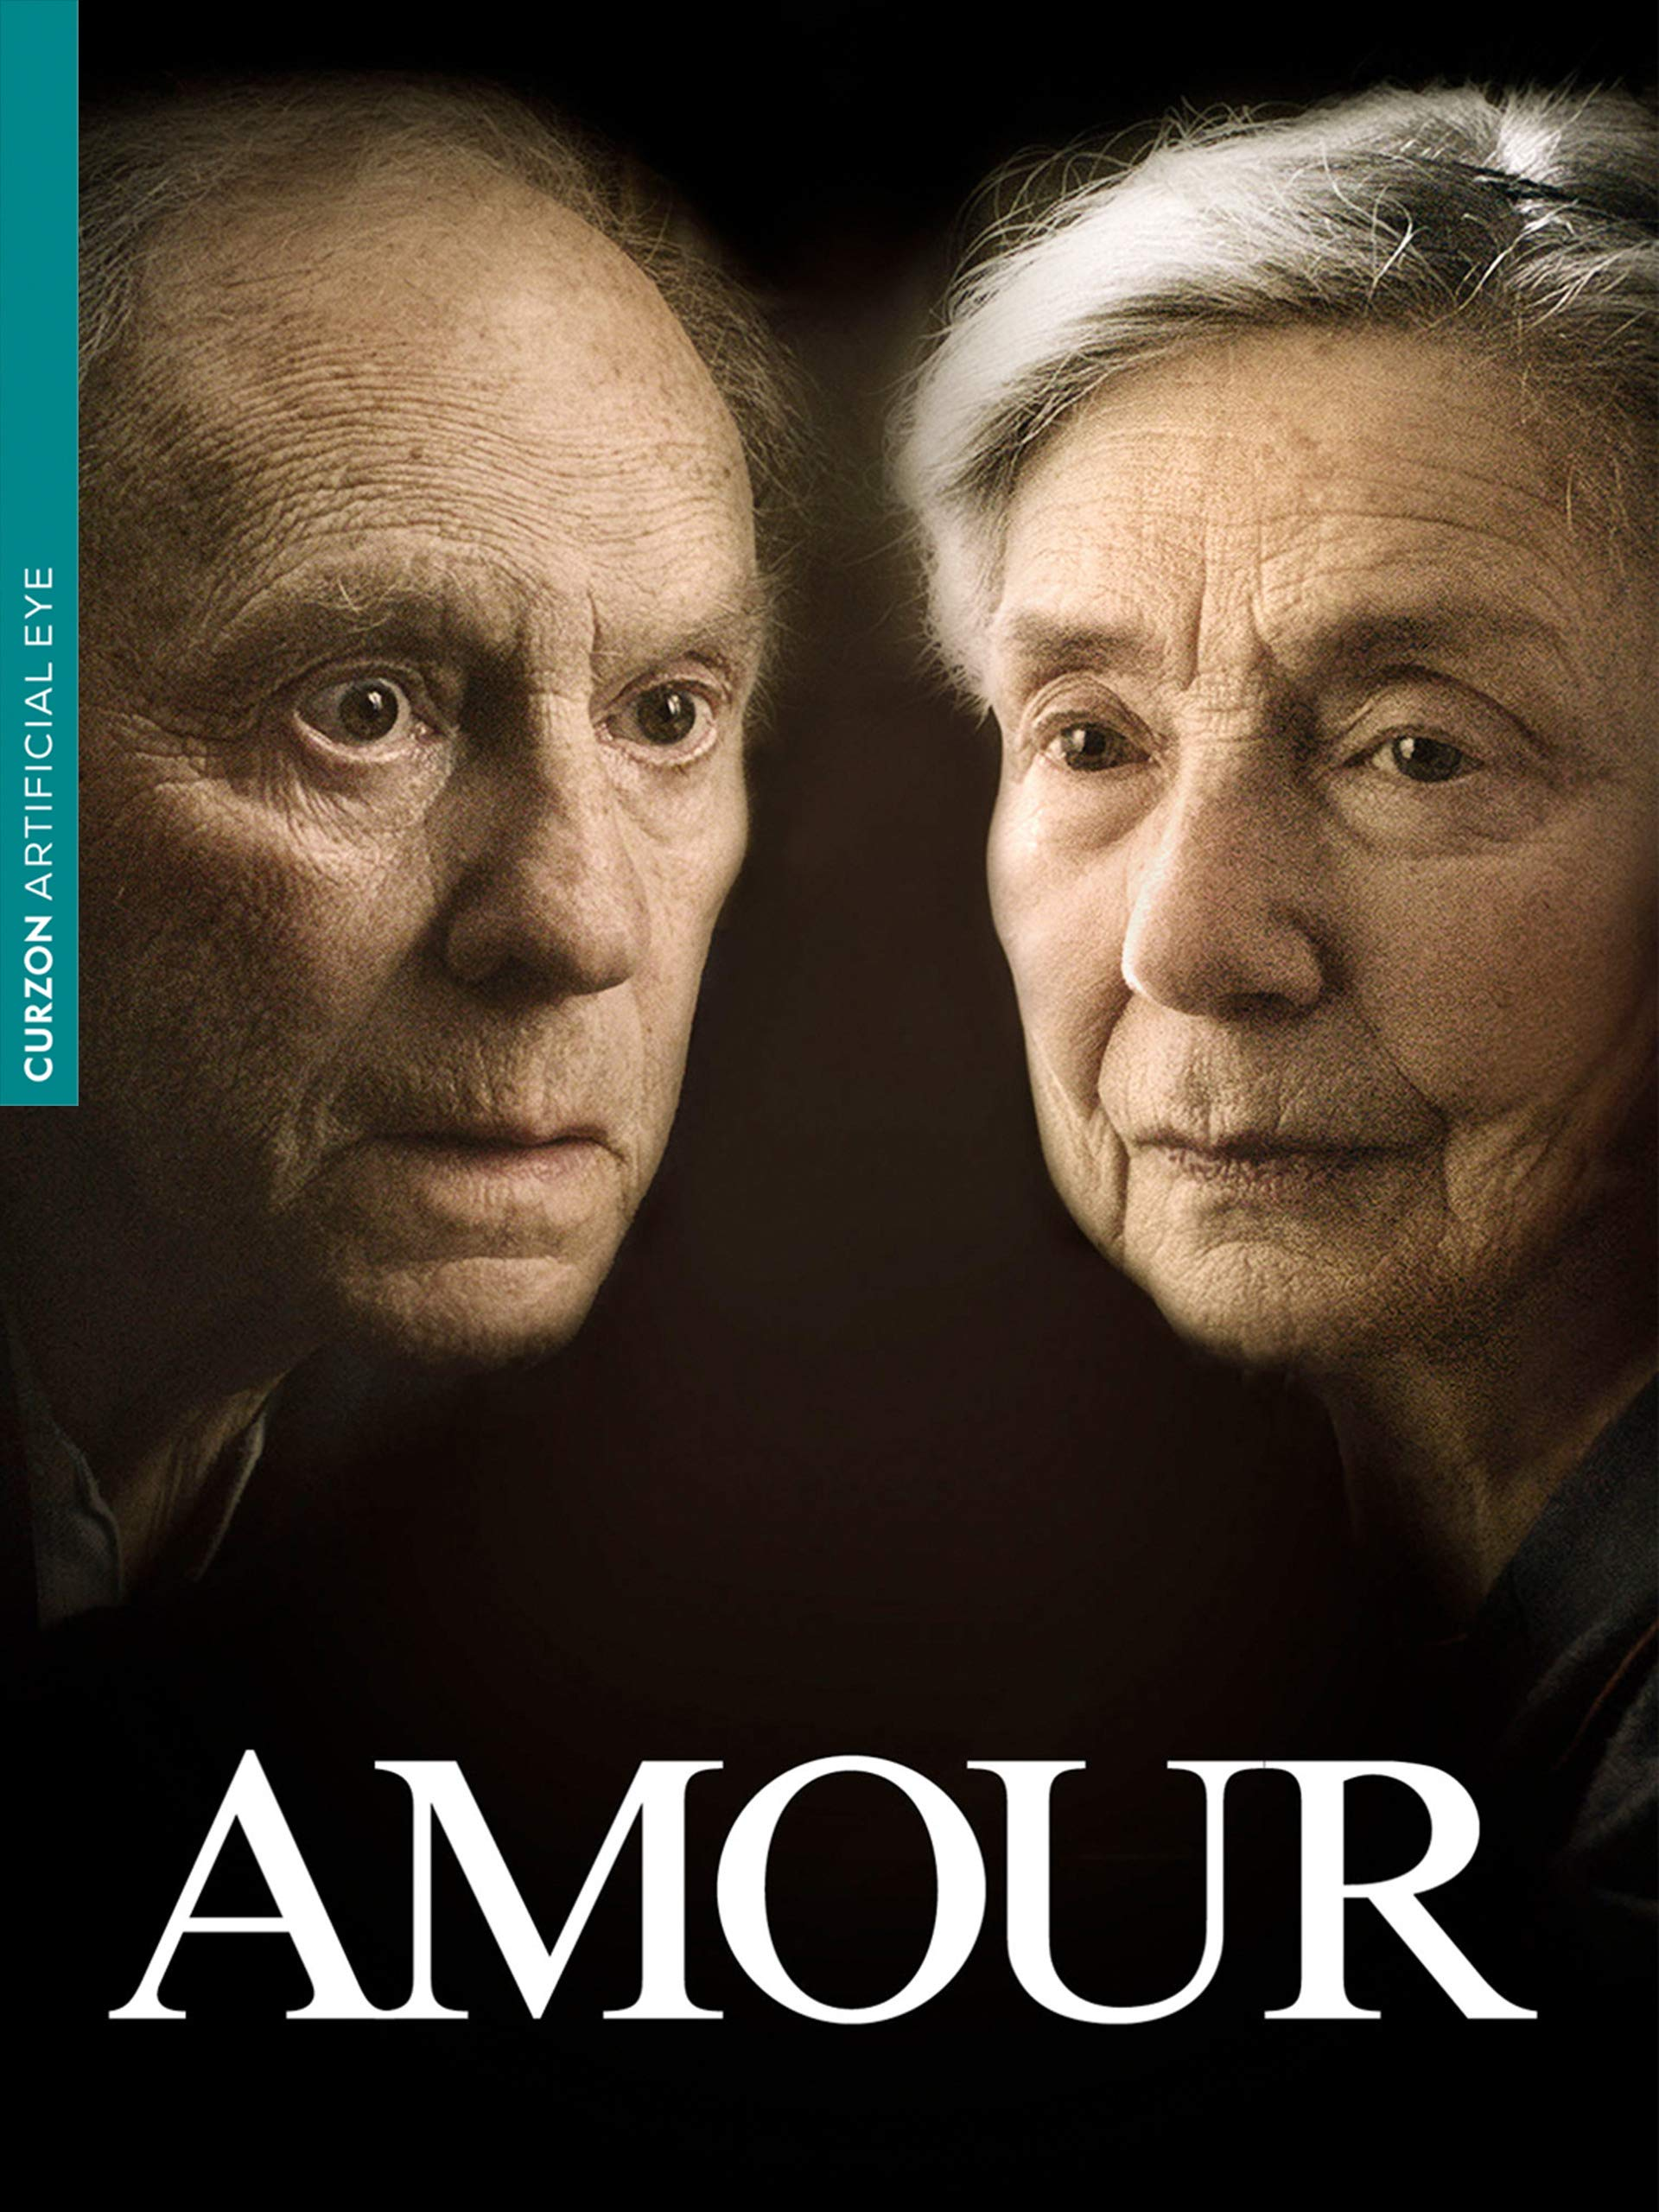 Amour on Amazon Prime Video UK